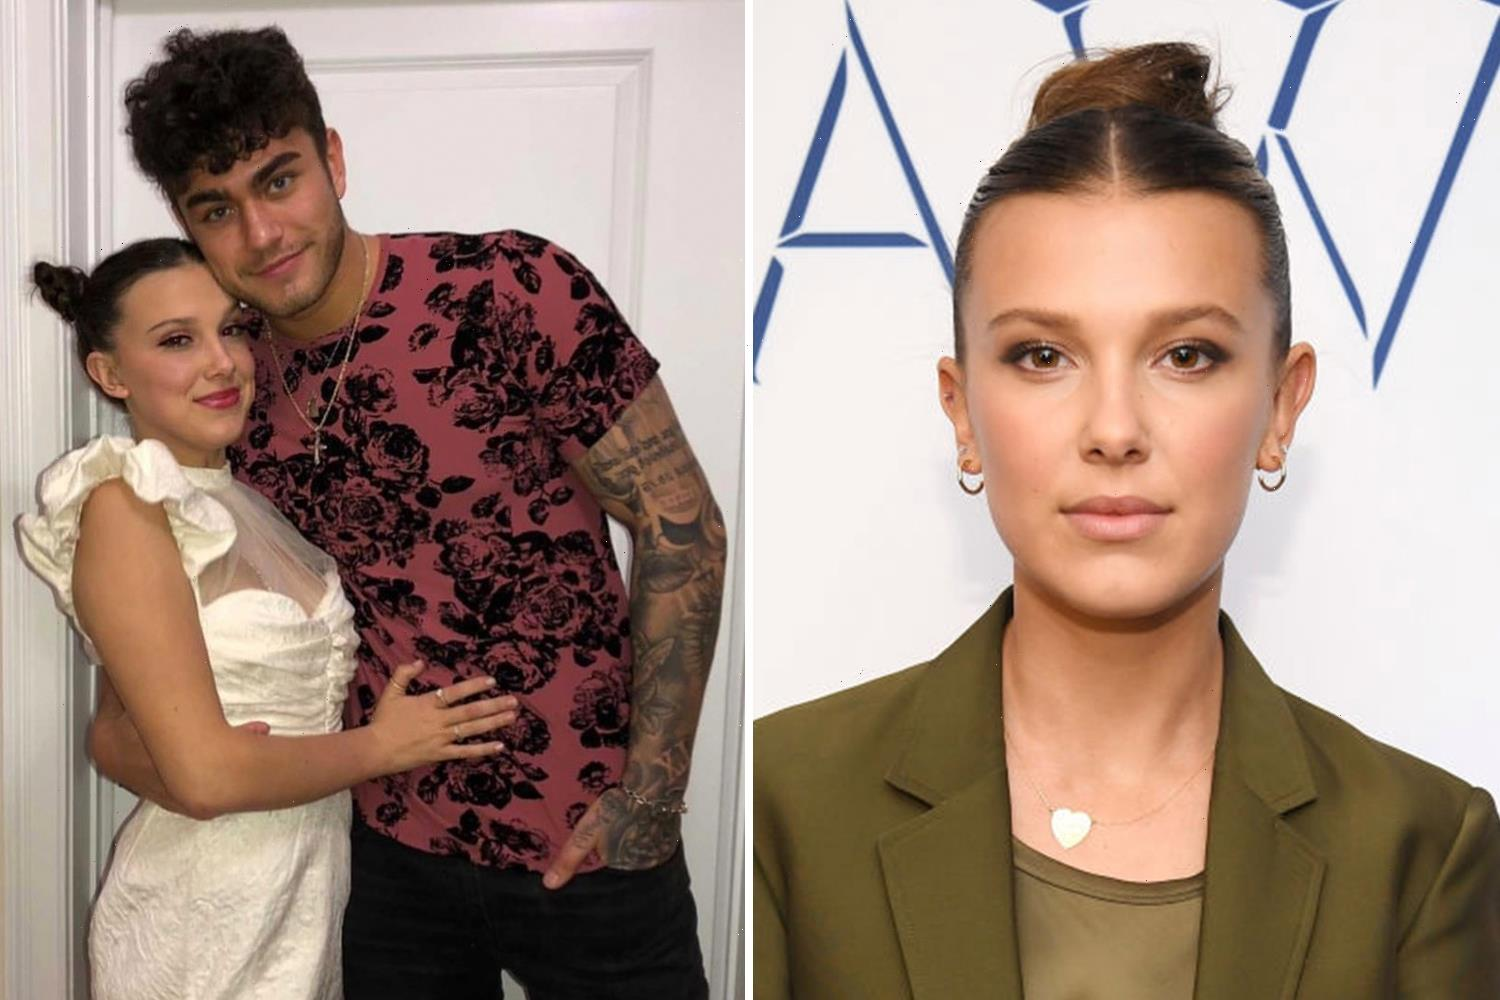 Millie Bobby Brown, 17, denies sexual relationship with TikTok star Hunter Ecimovic, 21, and calls his claims 'hateful'